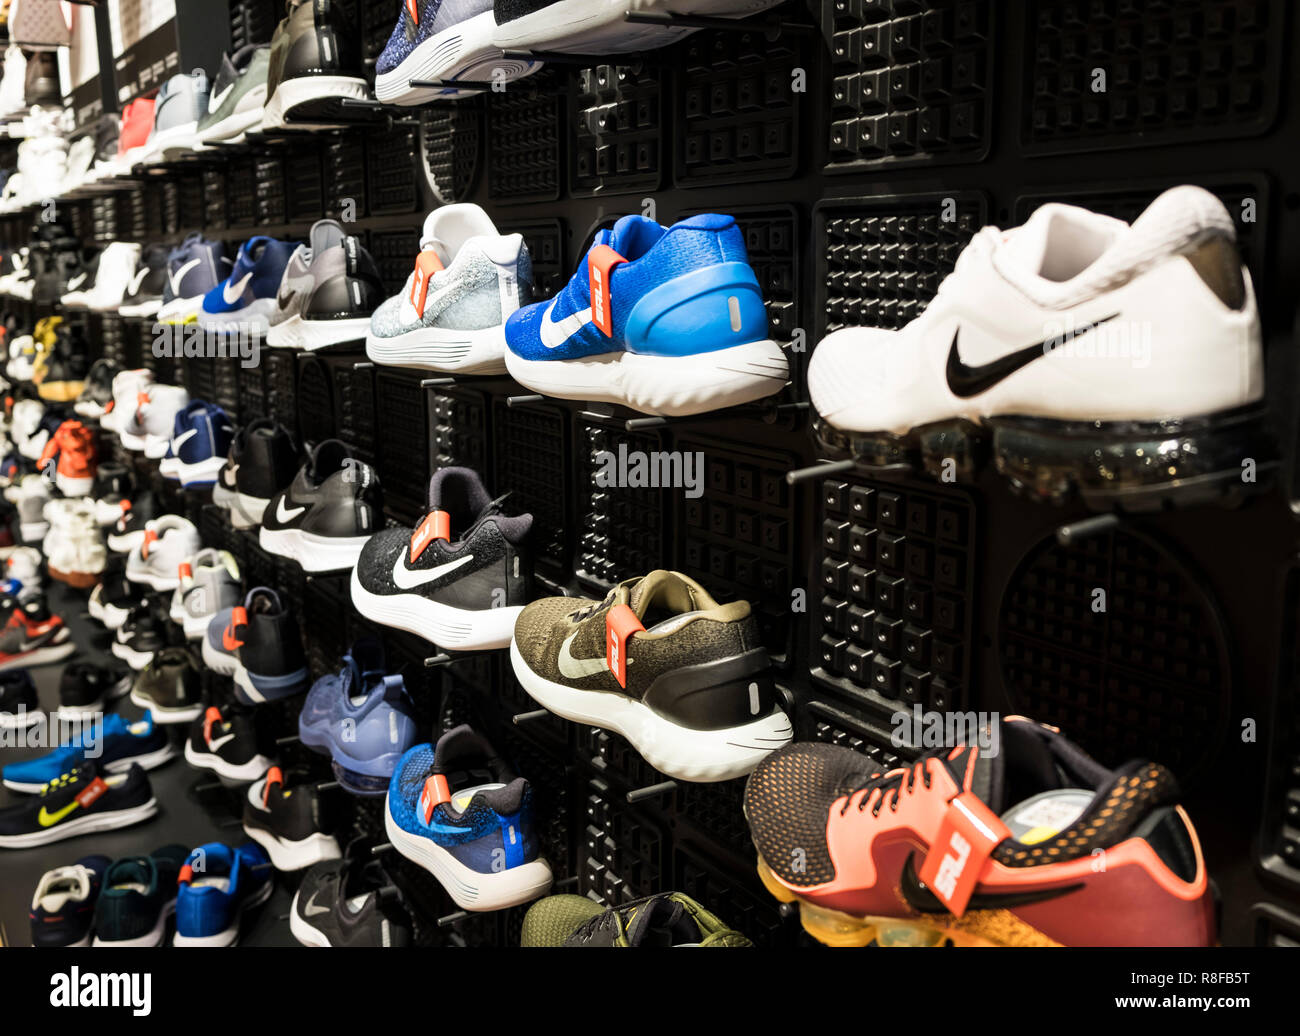 7aad9c60 Hong Kong, April 7, 2019: Nike shoes in store - Stock Image